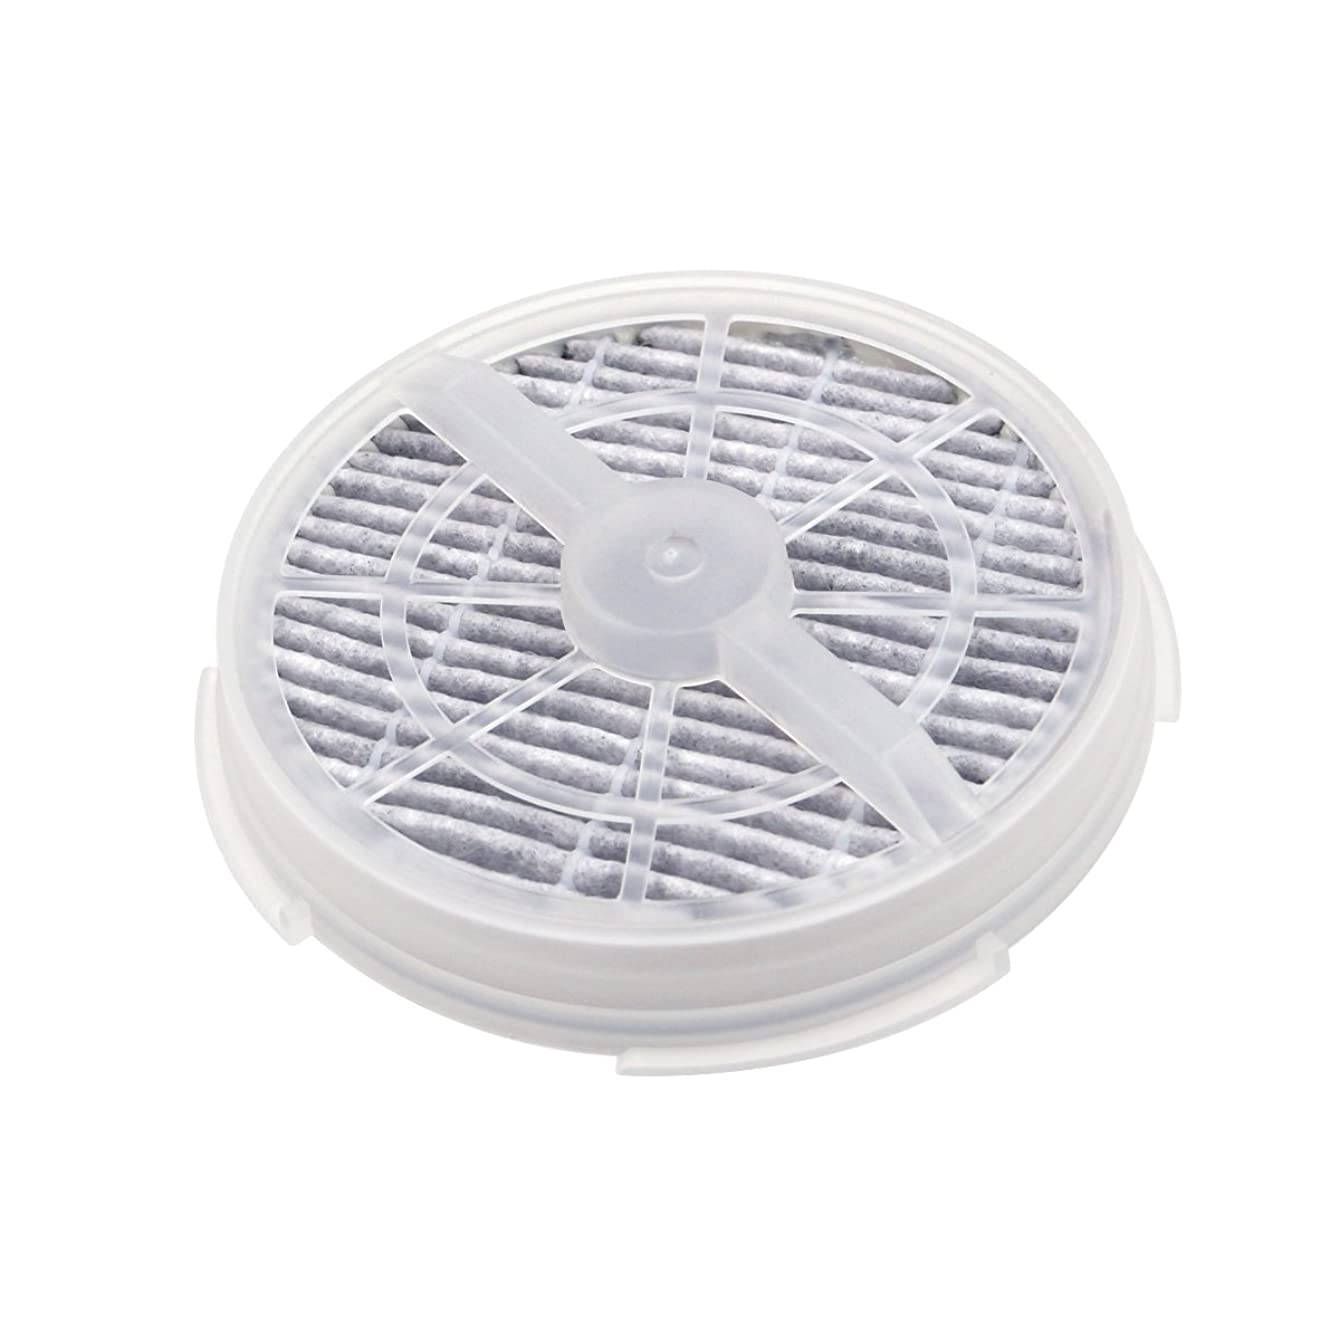 DHS Air Purifier Filter True HEPA Active Carbon Replacement Filter - SHD